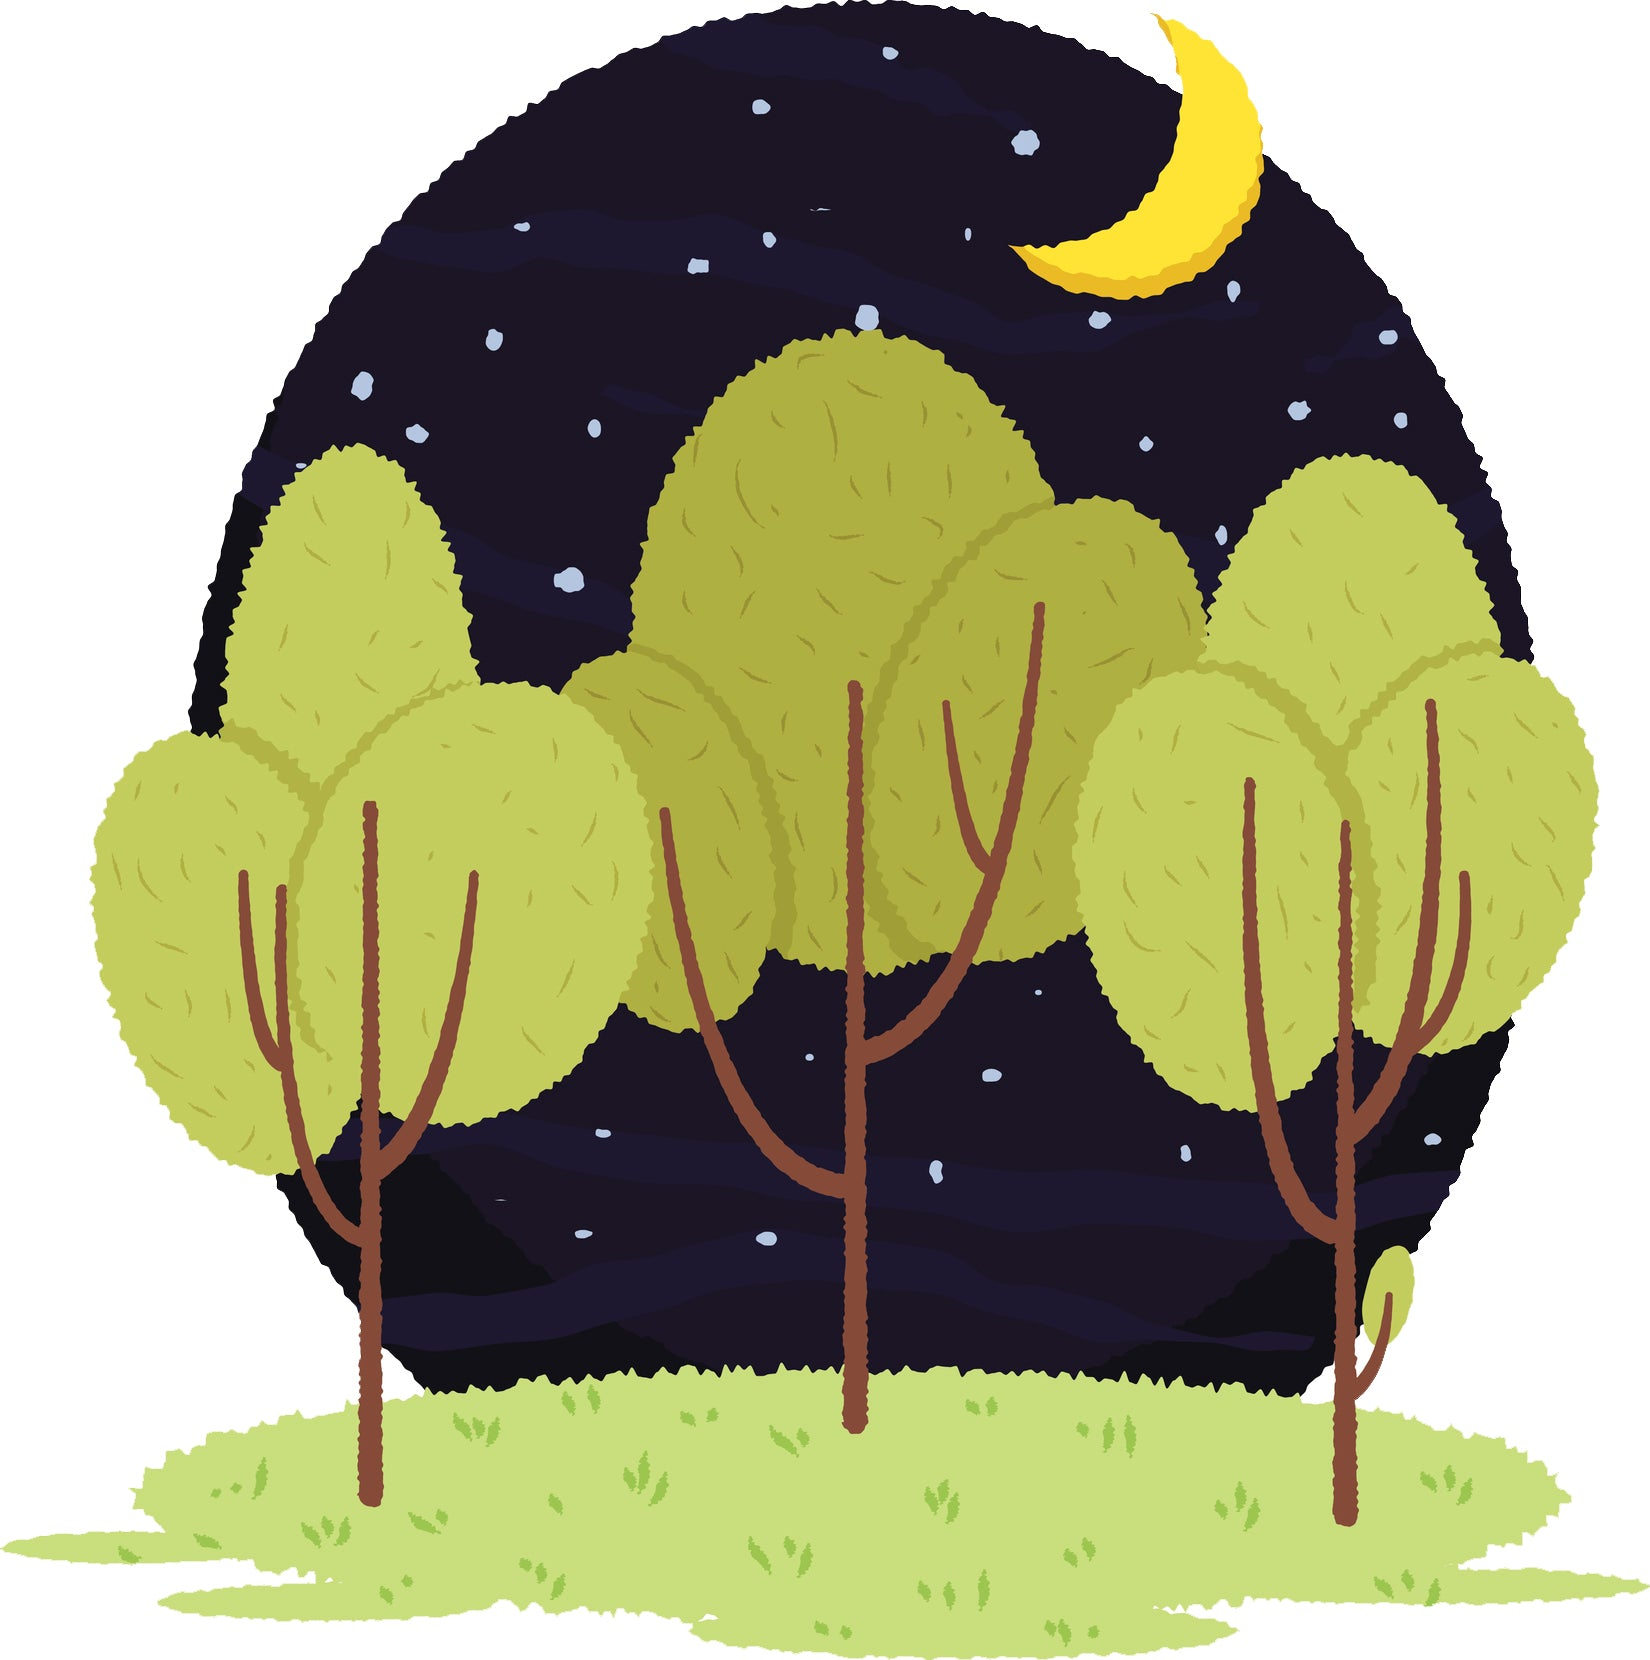 Pretty Outdoor Forest Woodland Nature Cartoon - Night Vinyl Decal Sticker